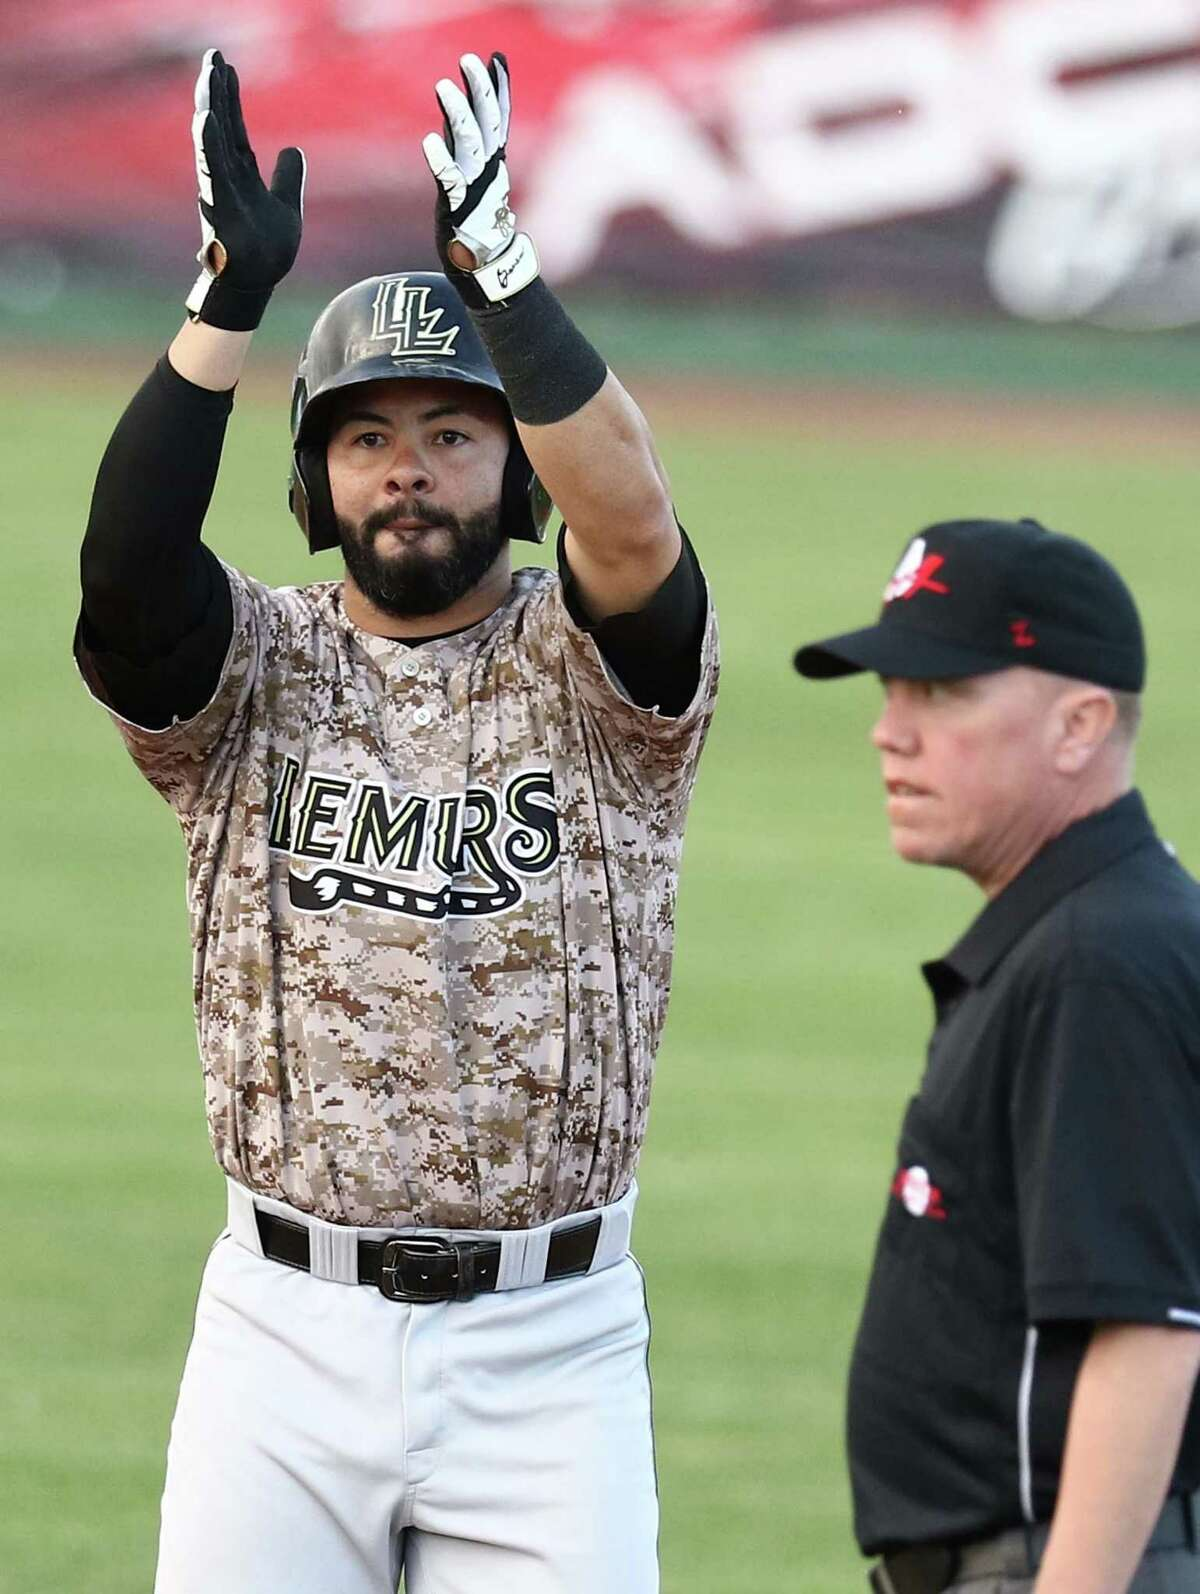 Lemurs infielder Abel Nieves is in his sixth year in the AA and hit .290 last year.